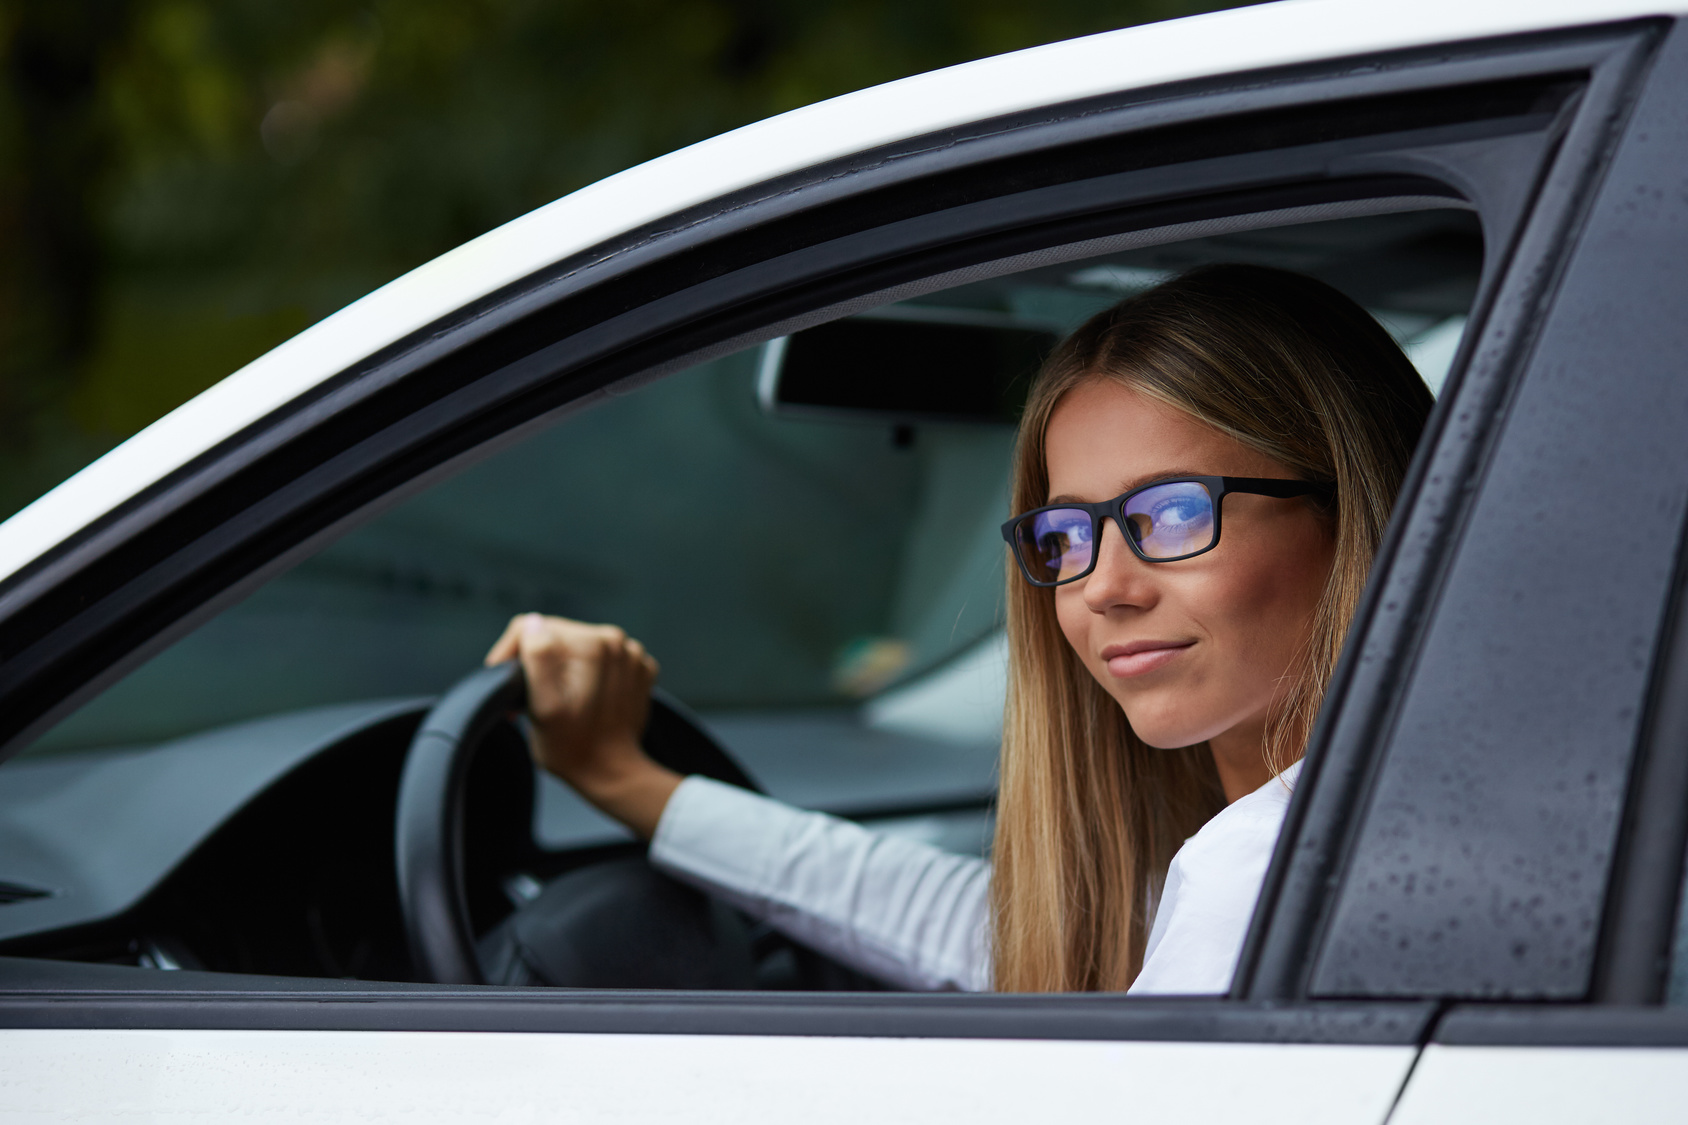 Young woman with glasses driving her car